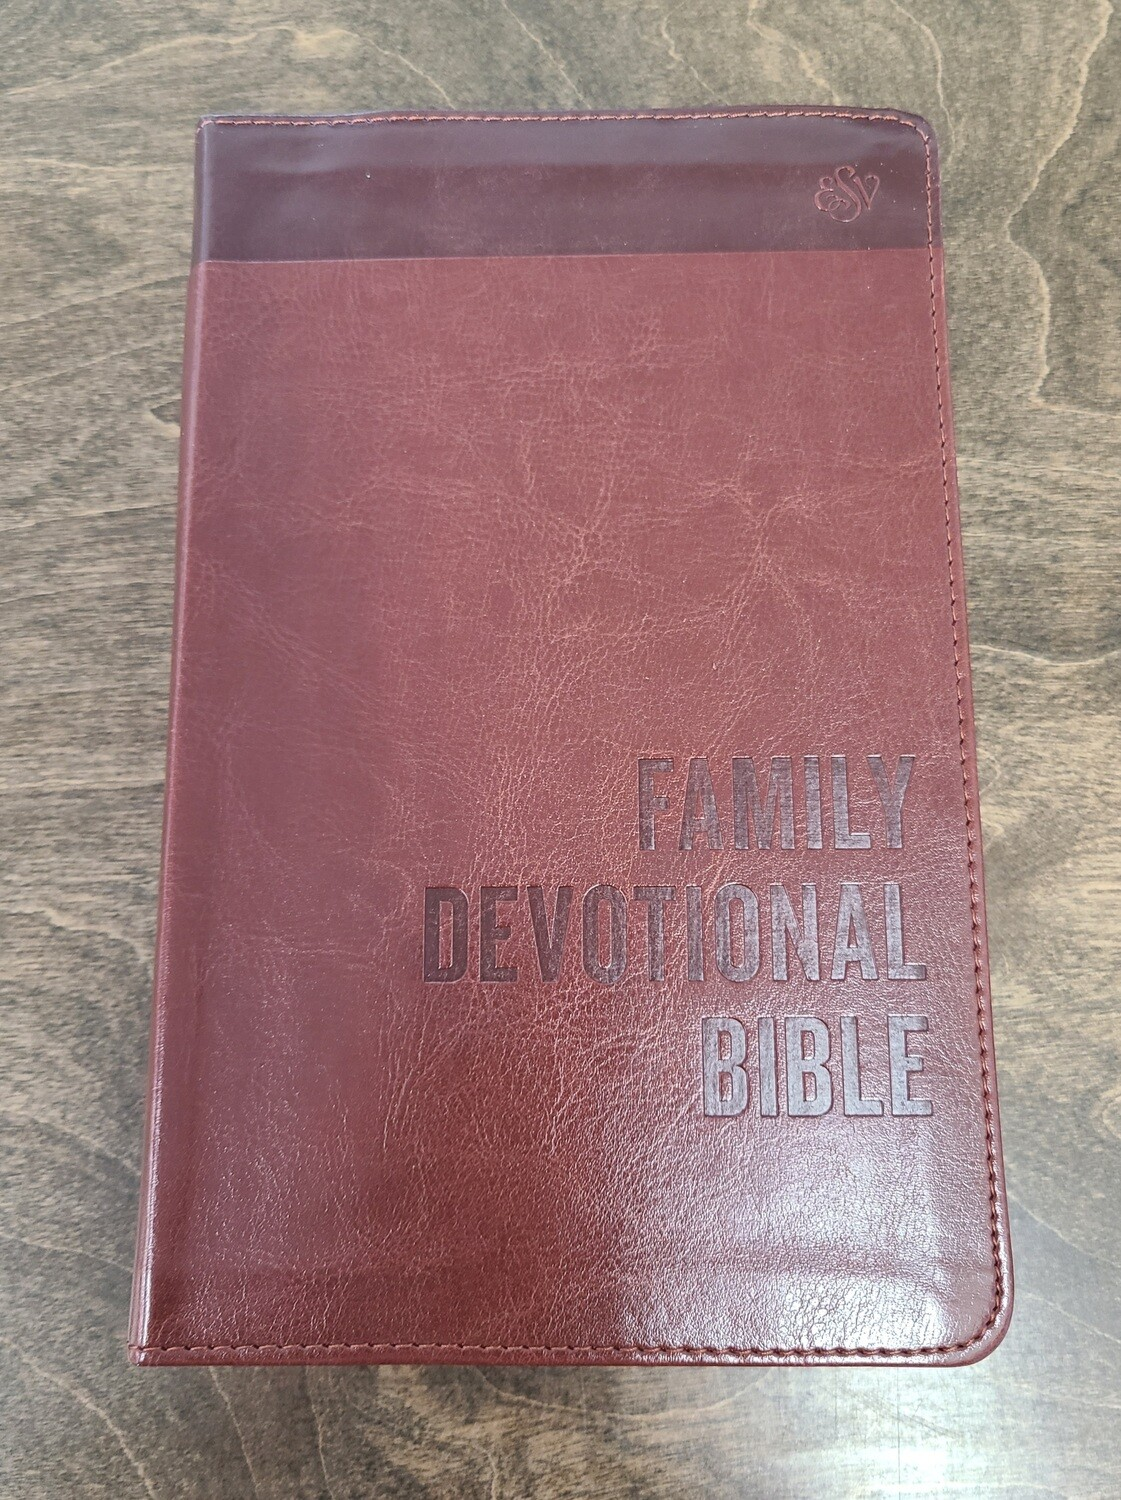 ESV Family Devotional Bible - Brown Leather Imitation